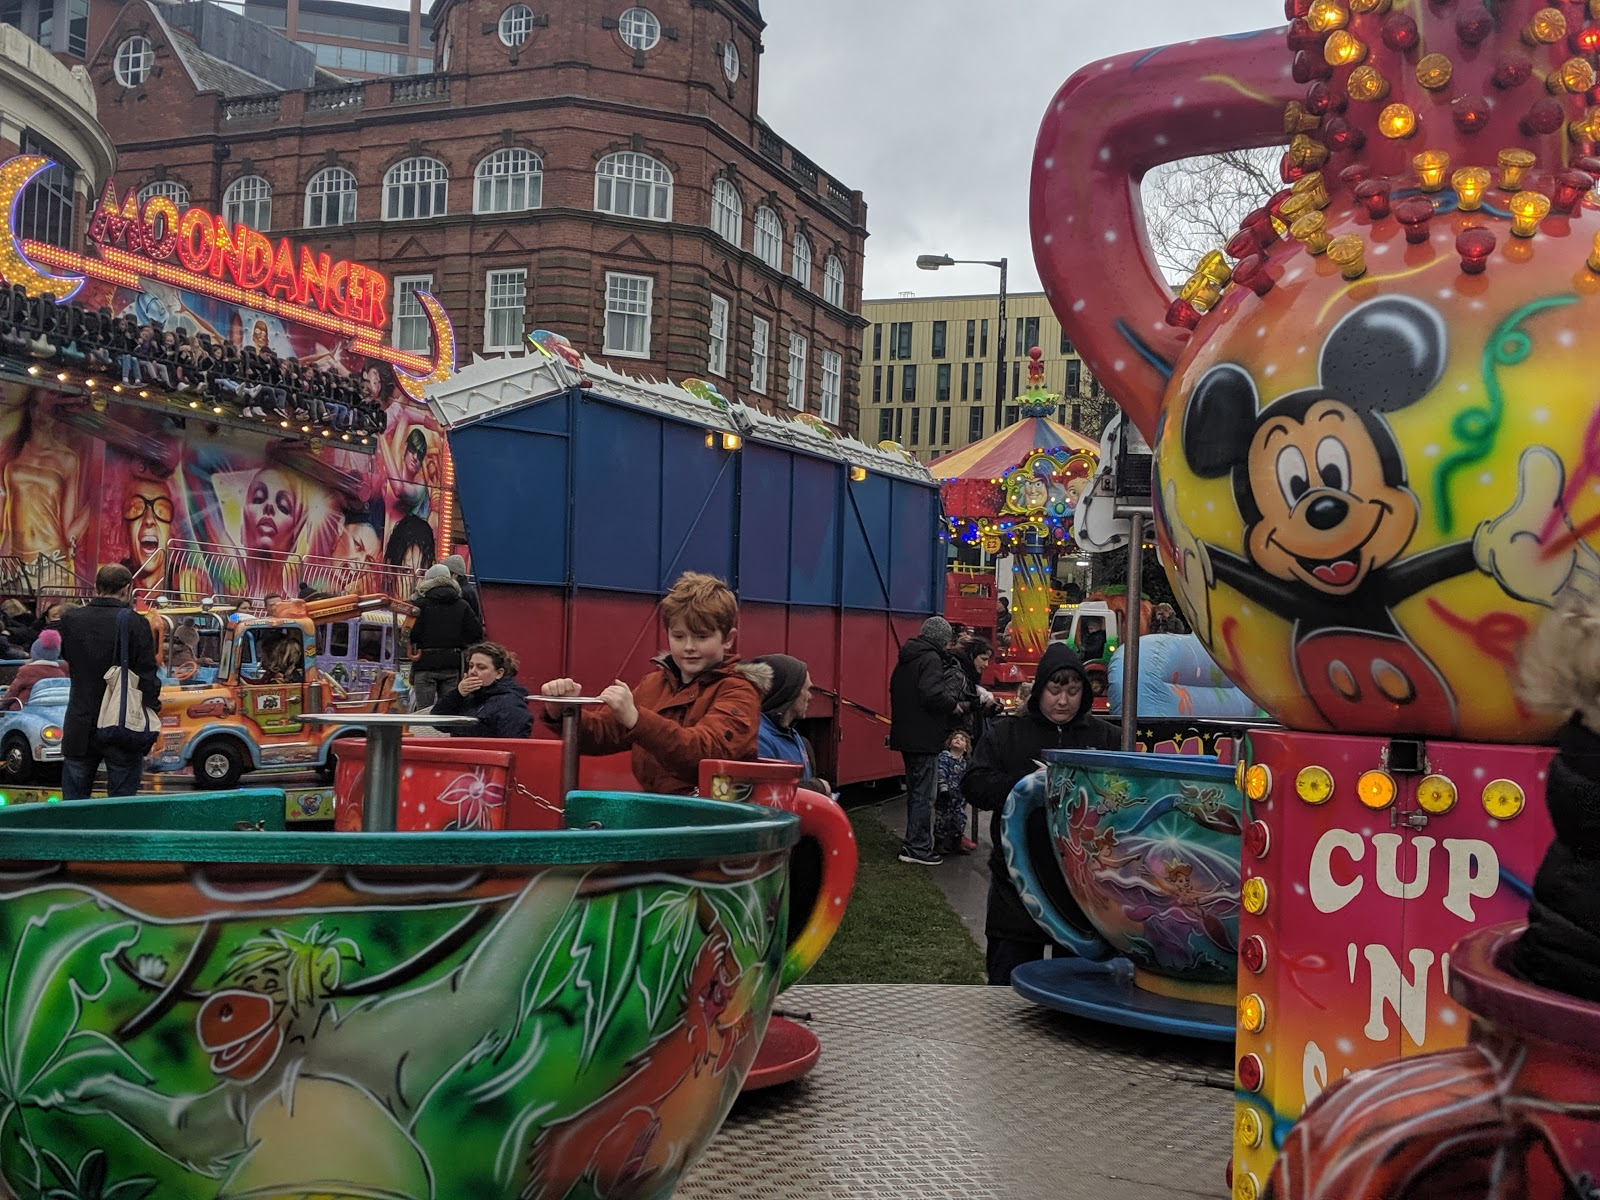 10 Reasons to Celebrate Chinese New Year in Newcastle  - fun fair